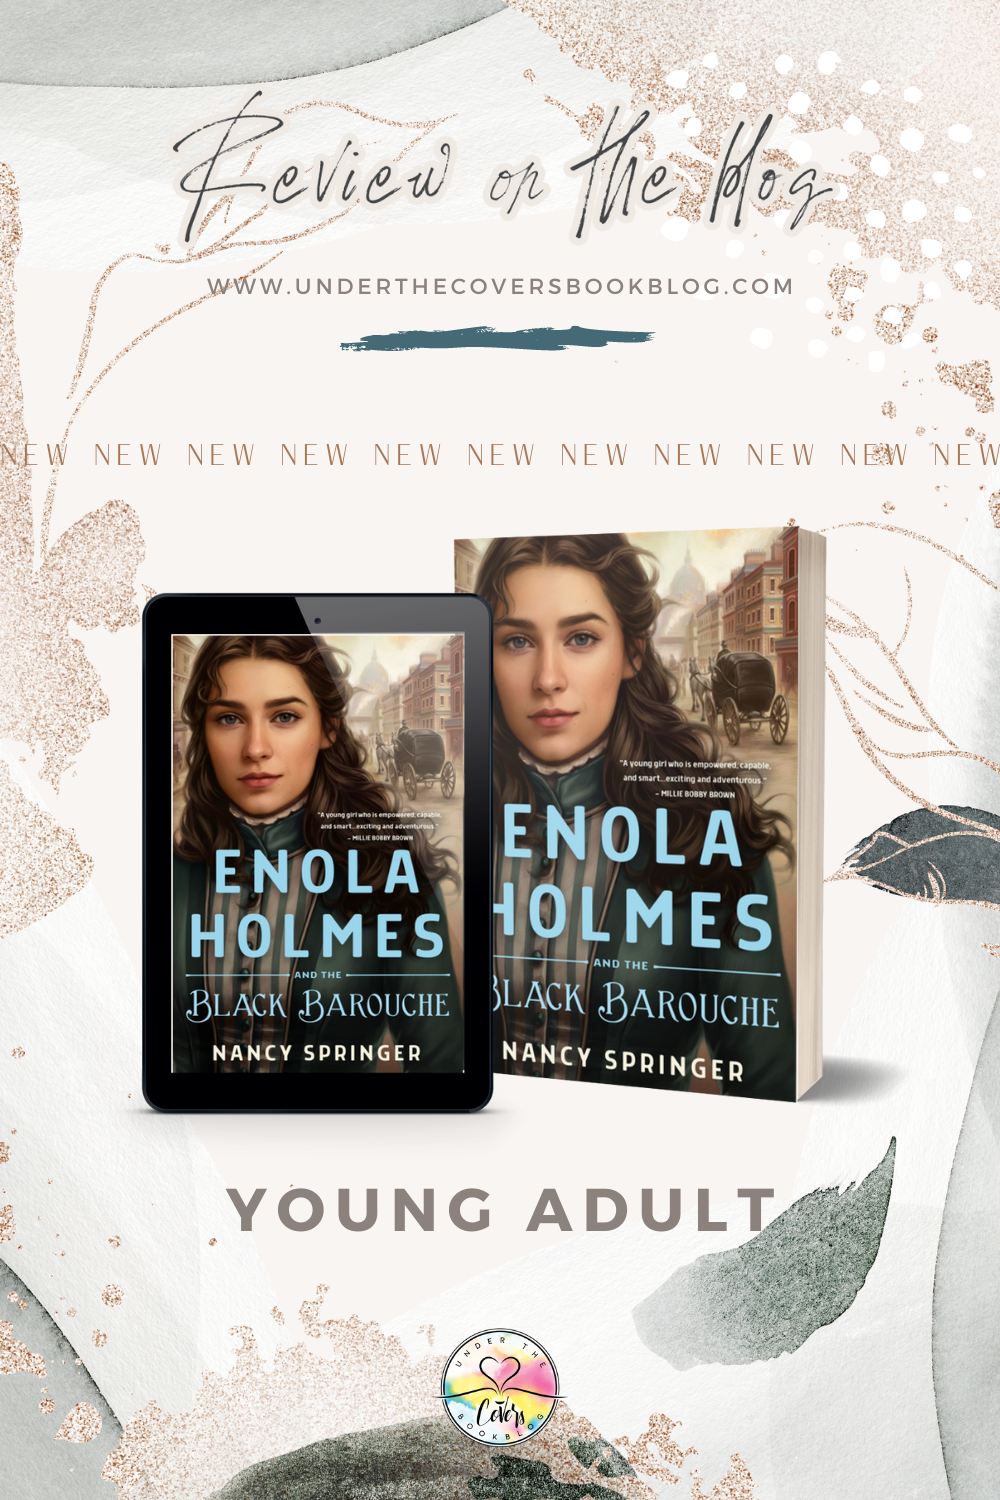 ARC Review: Enola Holmes and the Black Barouche by Nancy Springer